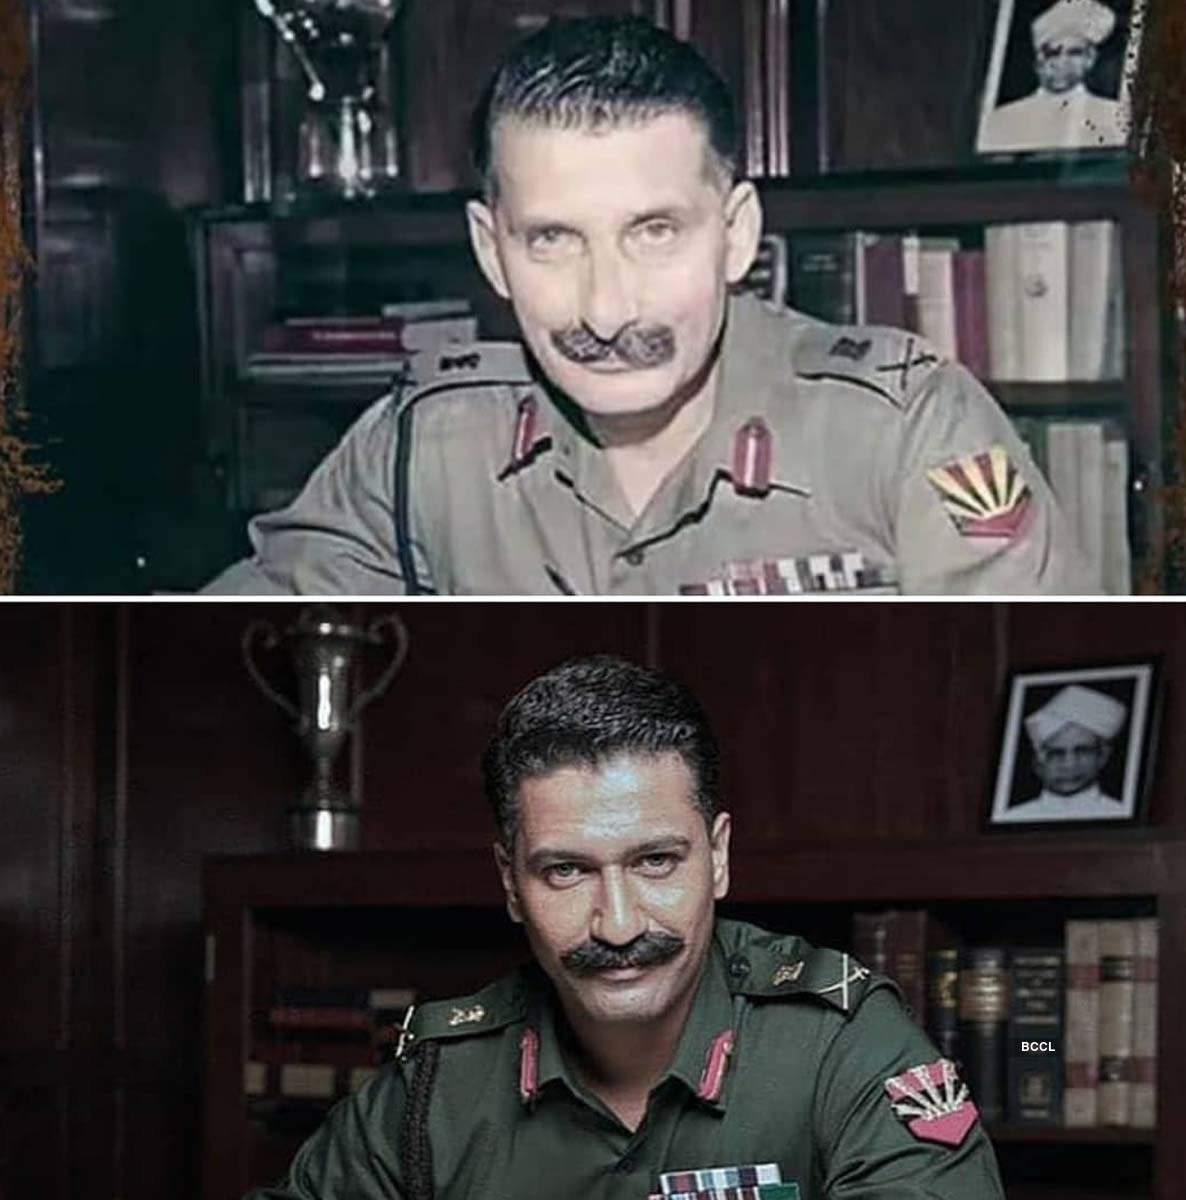 Vicky Kaushal's unrecognisable new look as Field Marshal Sam Manekshaw is winning the internet